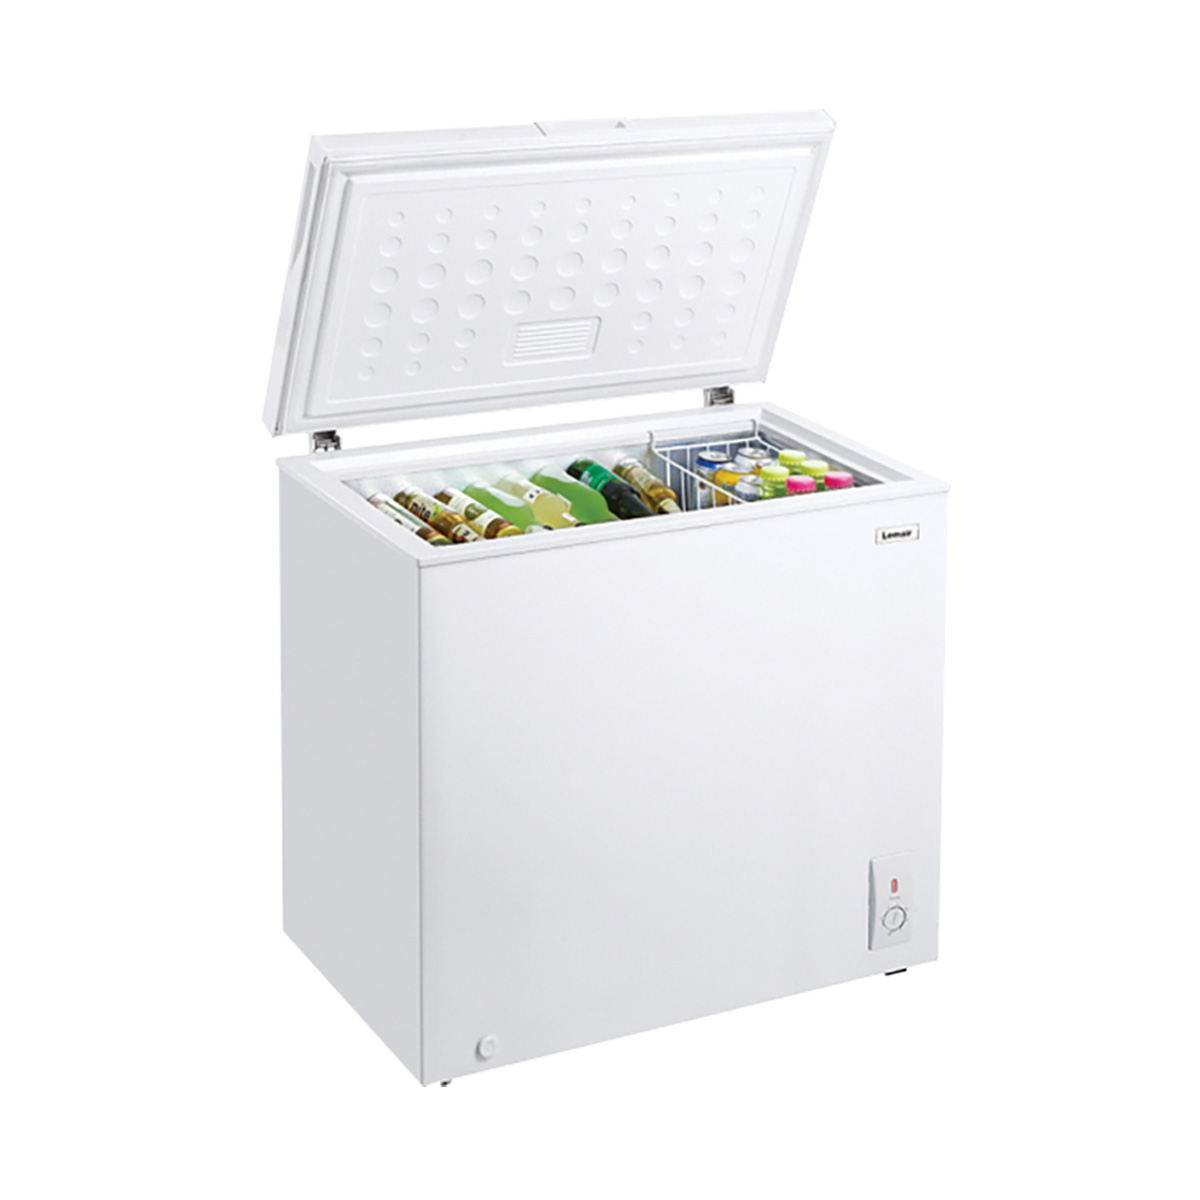 Lemair Chest Freezer LCF200